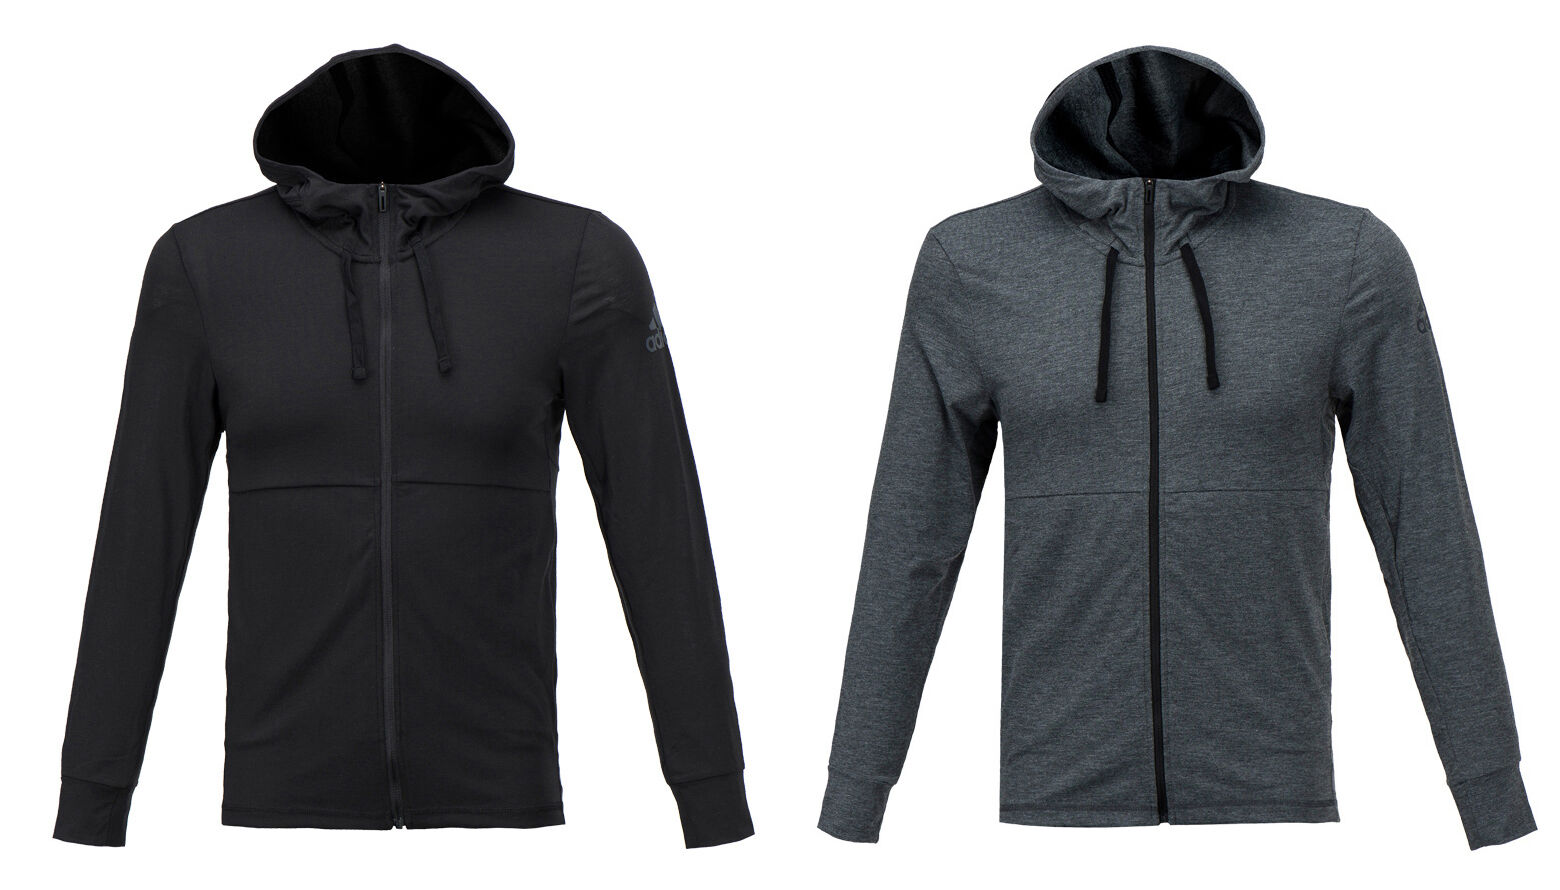 Adidas Workout Lite Zip-up Top CD8841 CD8839 Soccer Training Climalite Hoodies